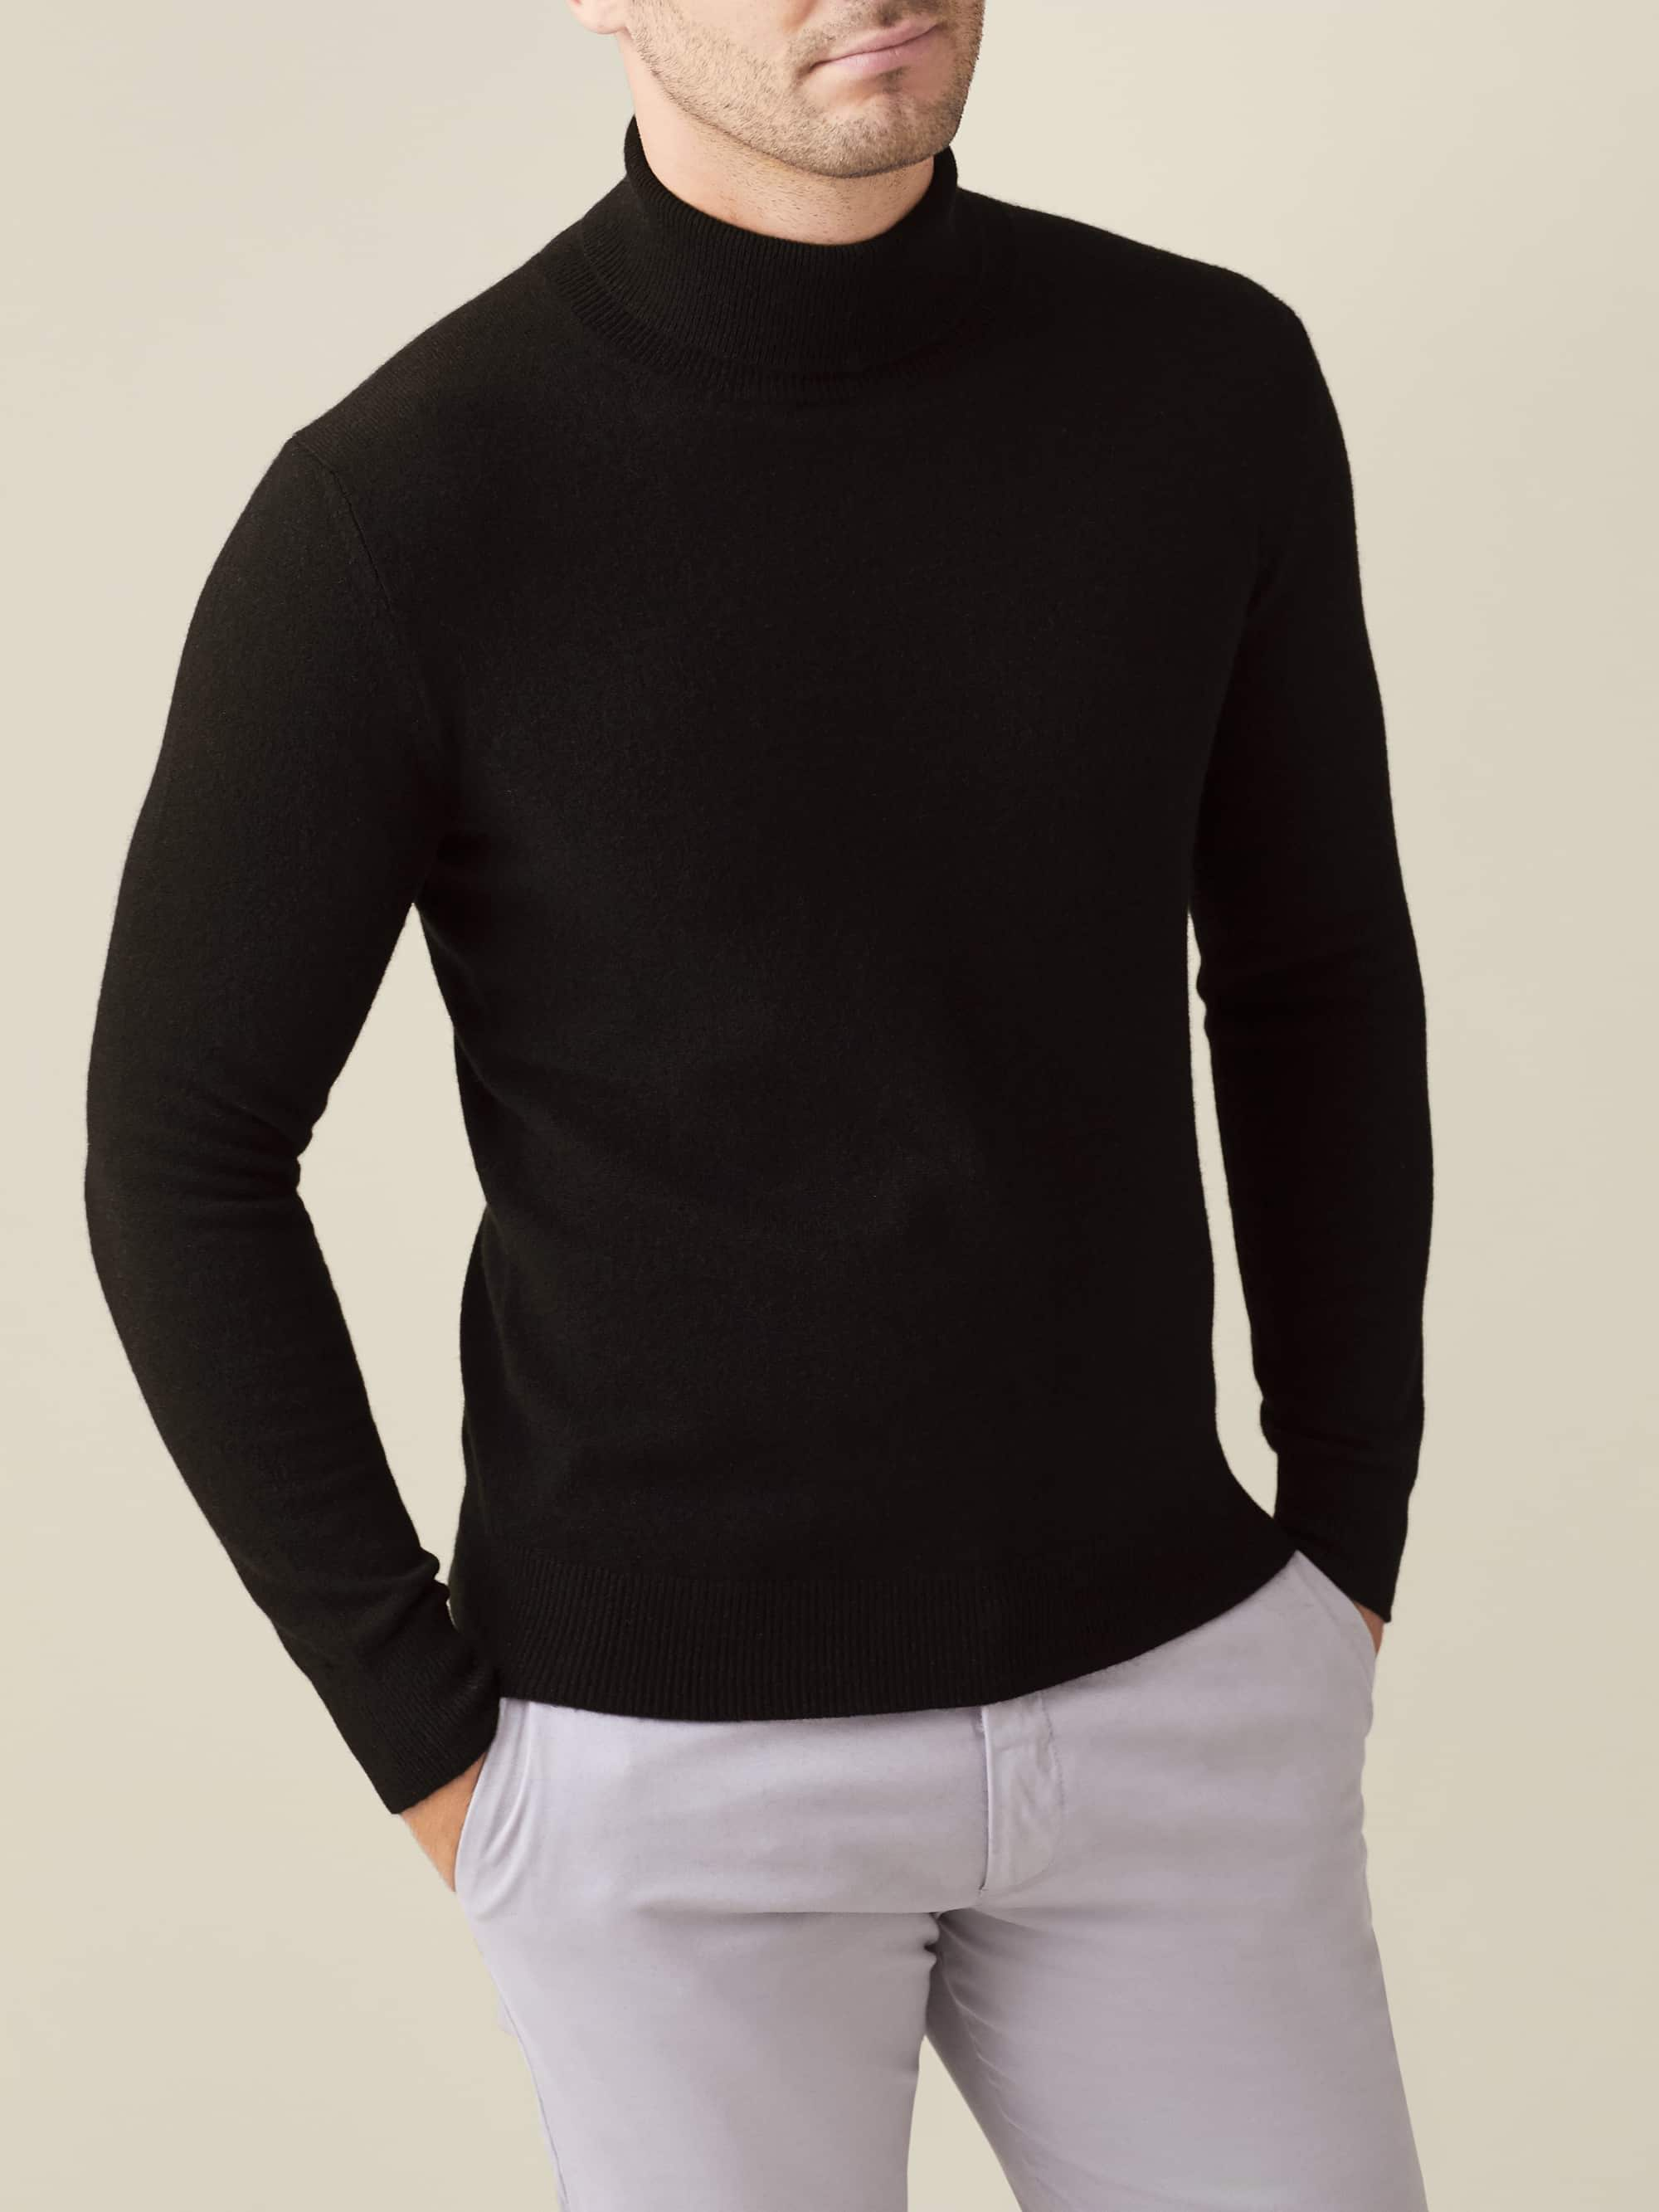 Luca Faloni Black Pure Cashmere Roll Neck Made in Italy